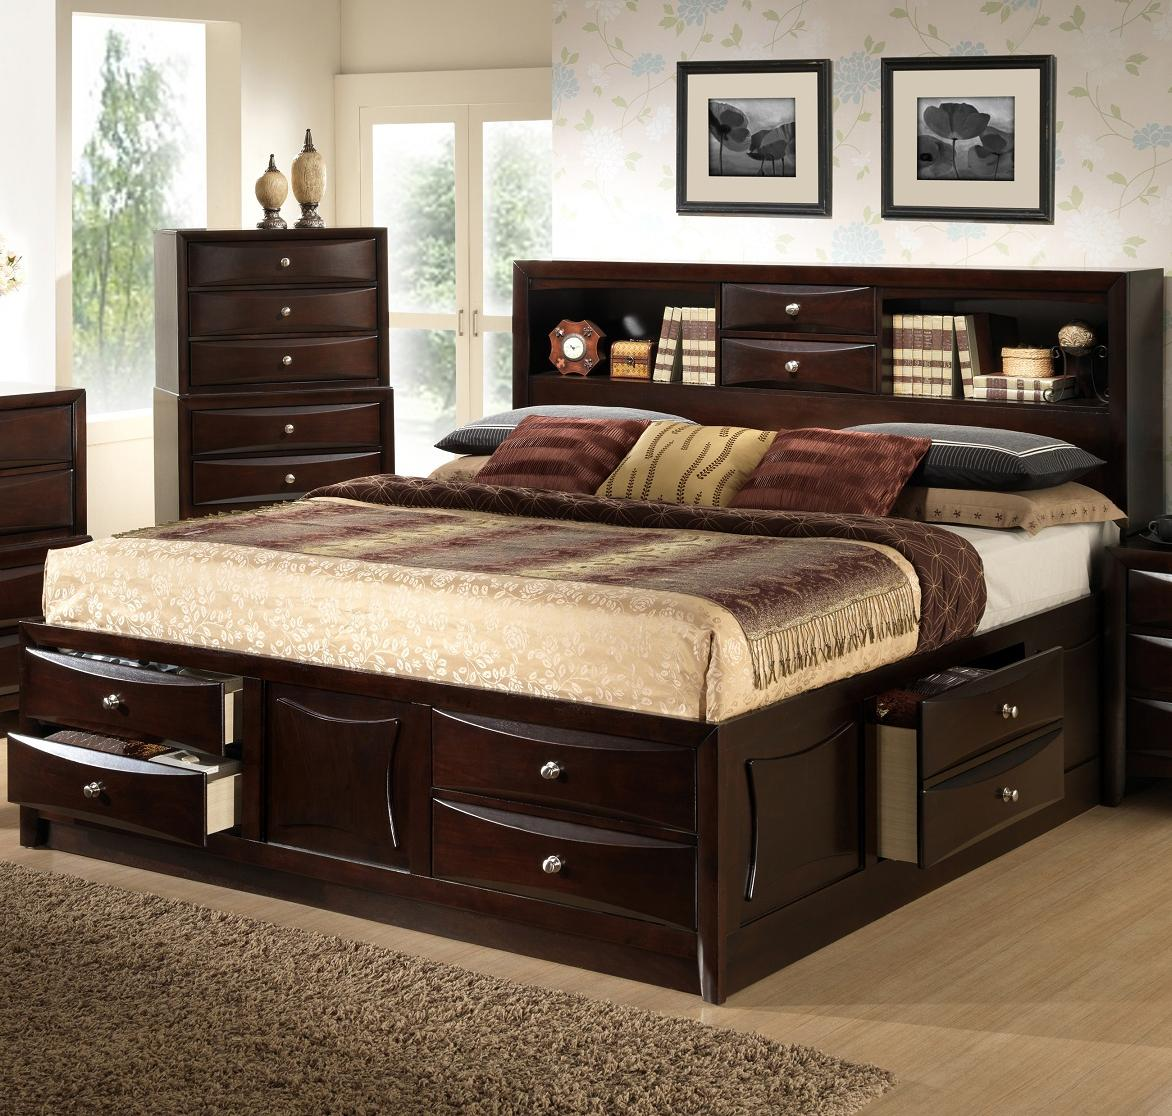 Lifestyle Todd King California King Storage Bed W Bookcase Headboard Royal Furniture